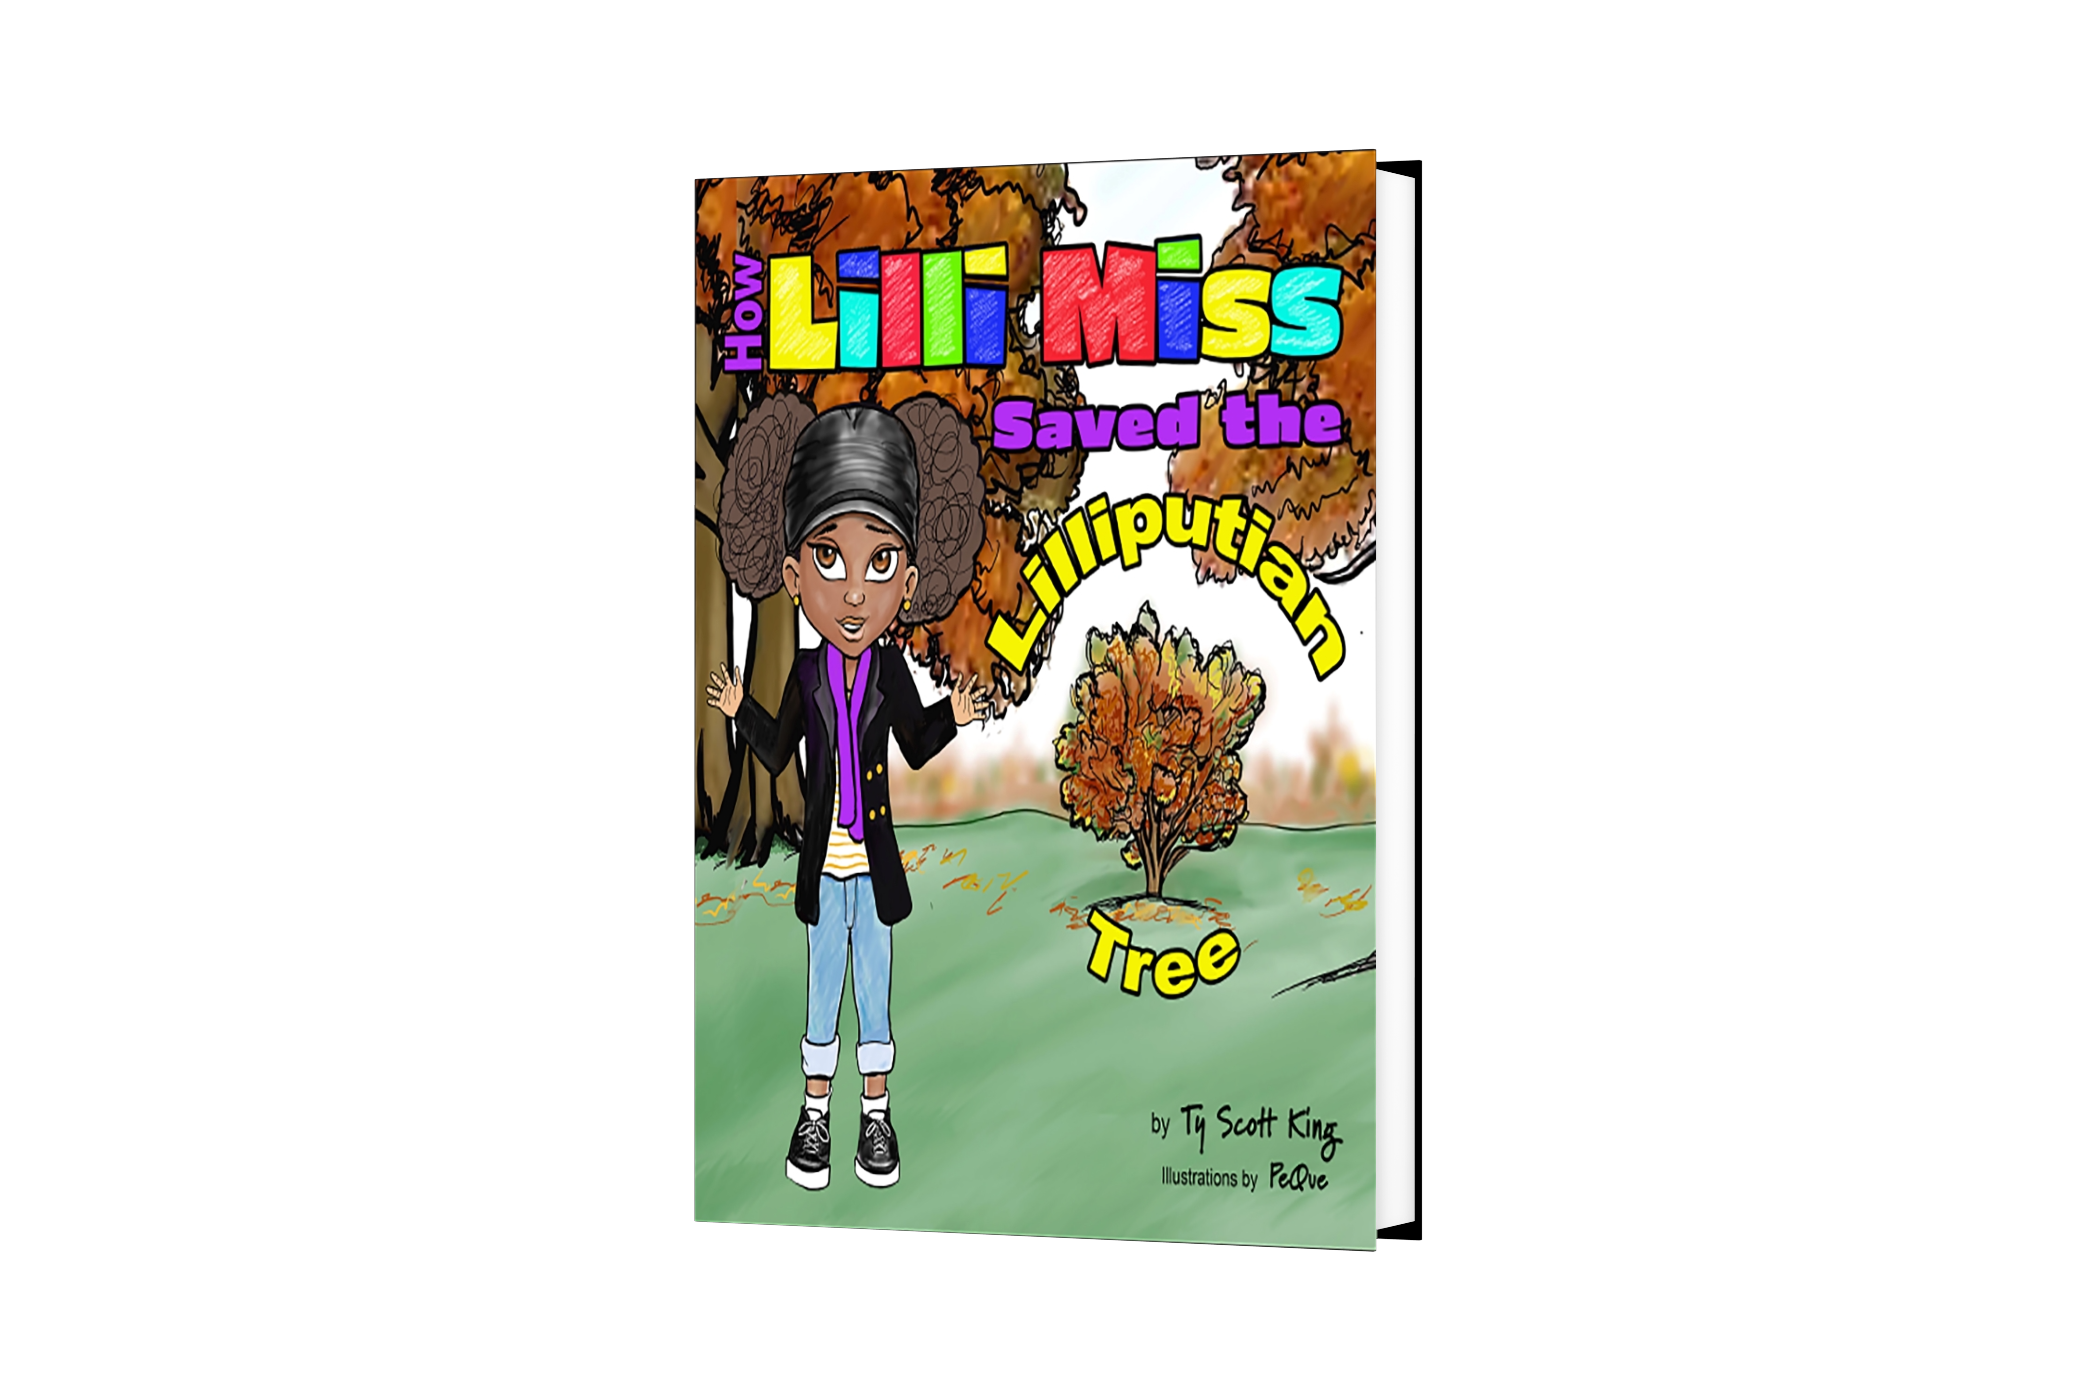 Artist and Bestselling Author Releases Children's Book Highlighting Family Values and Environmental Care